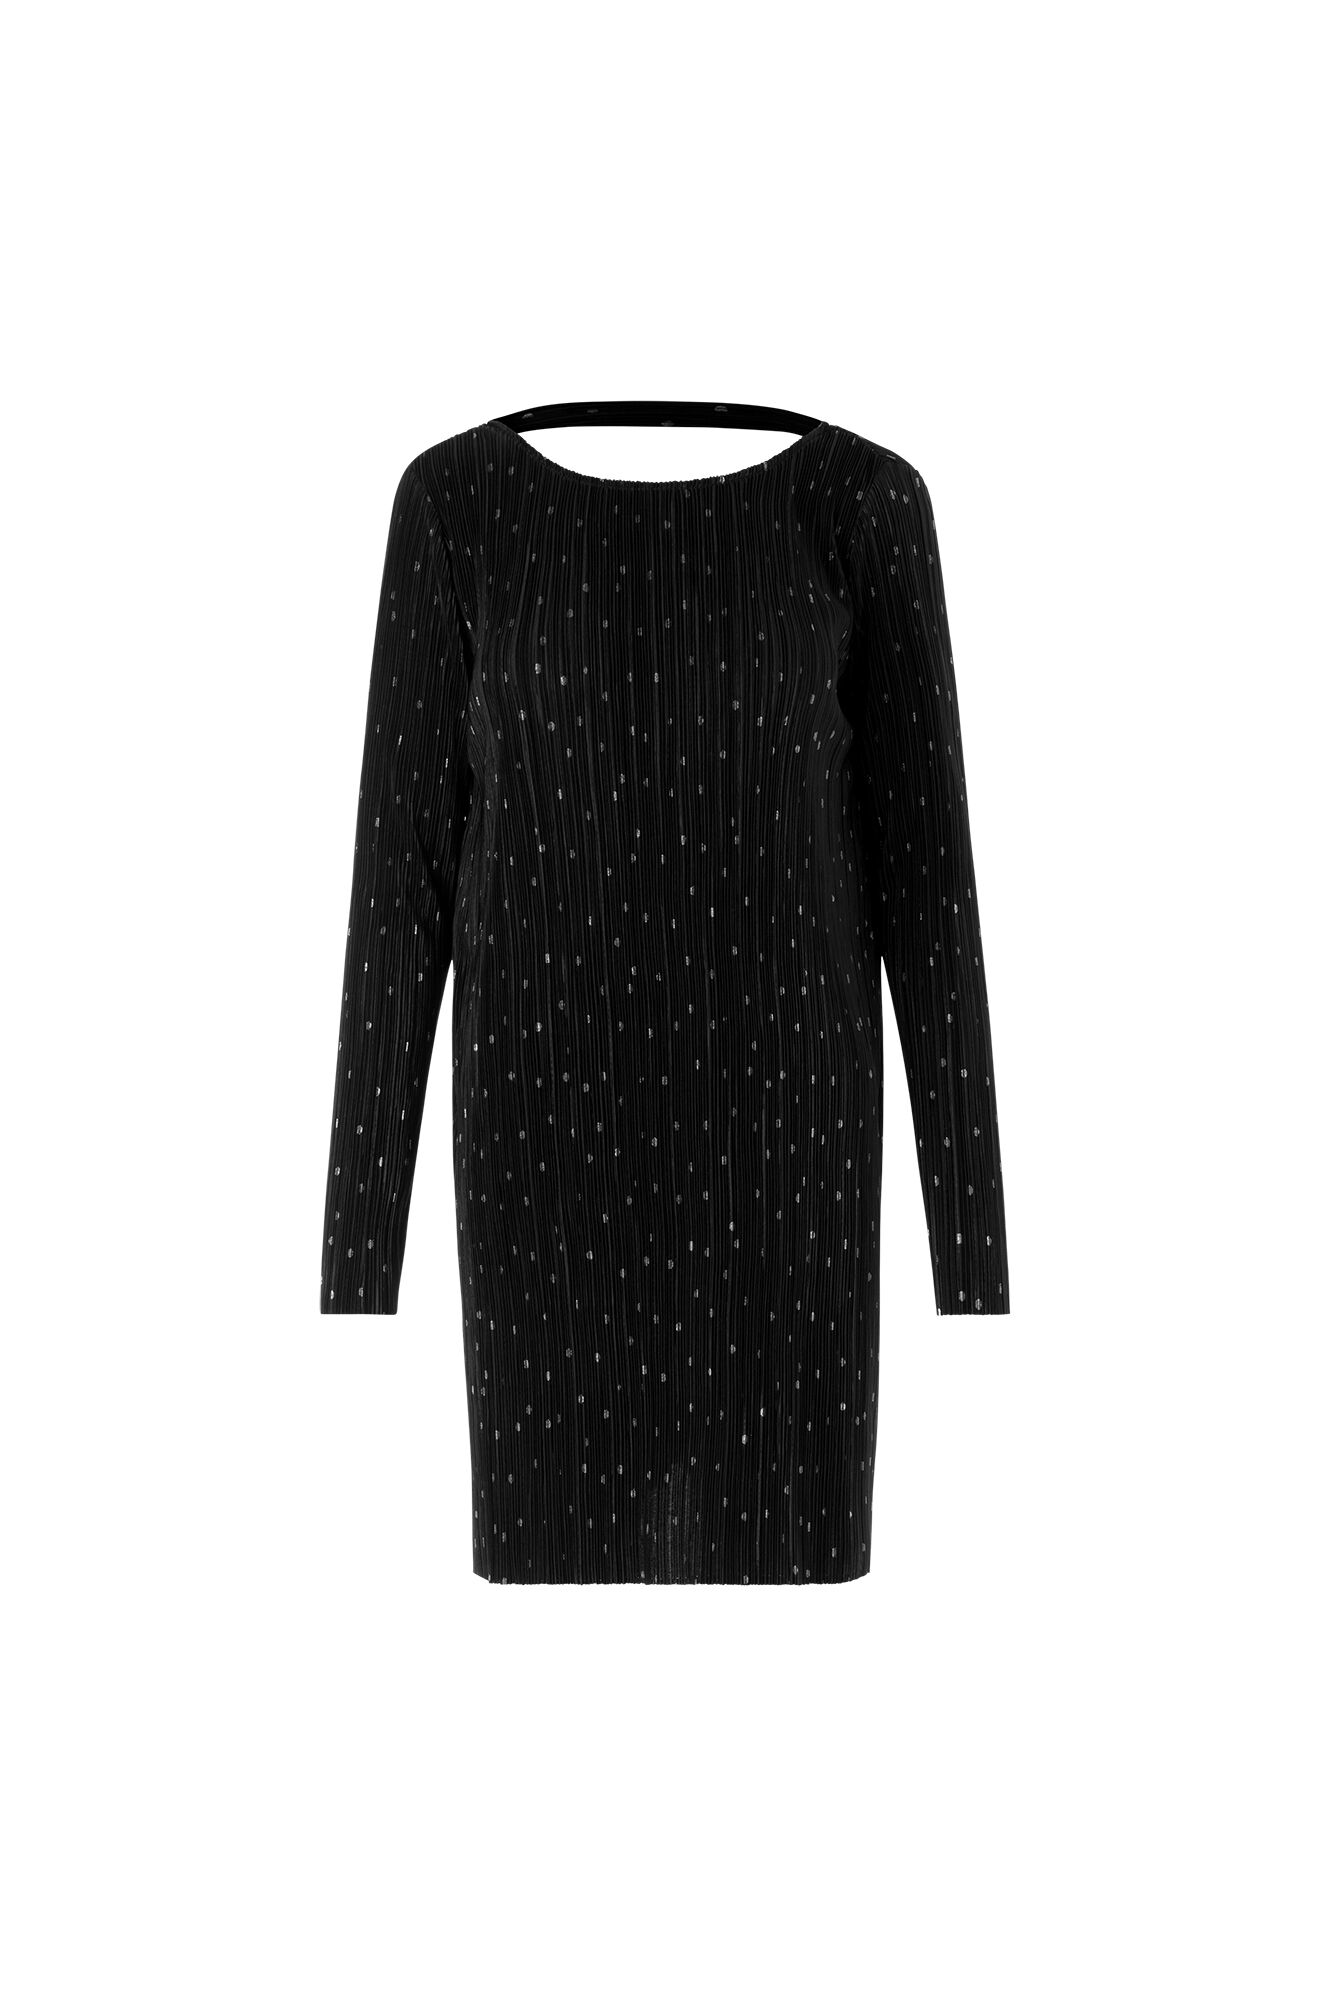 ENDOCK LS DRESS AOP 5942, BLACK SILVER DOT AOP